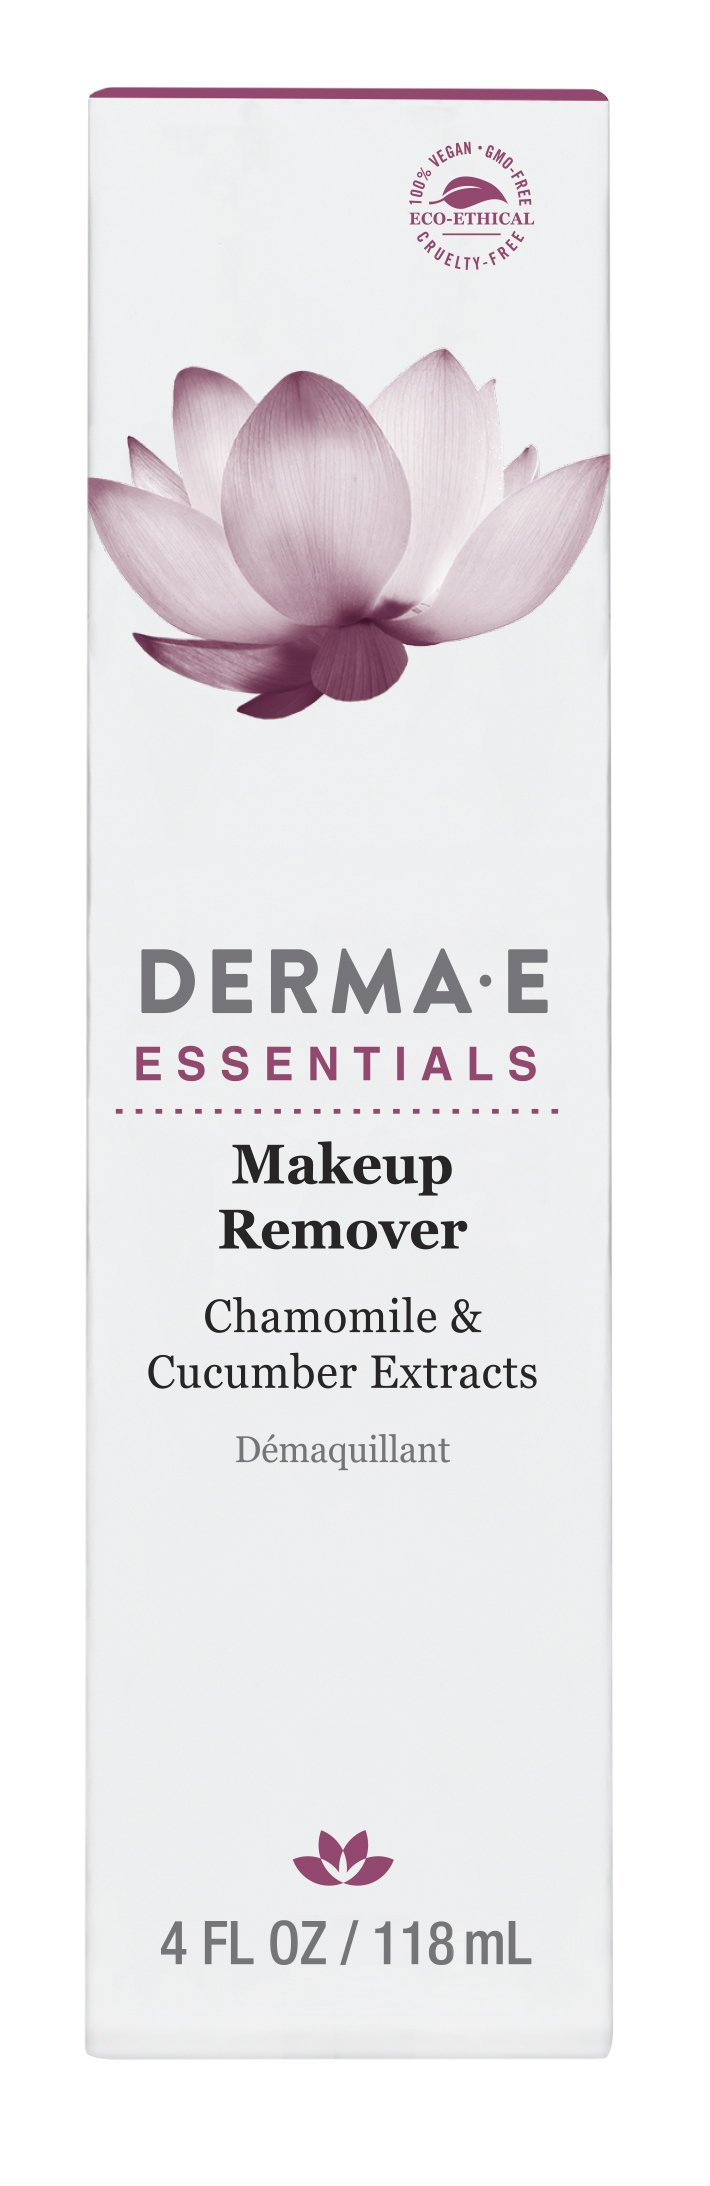 DERMA E Makeup Remover with Chamomile and Cucumber Extracts 4 fl oz by DERMA-E (Image #3)